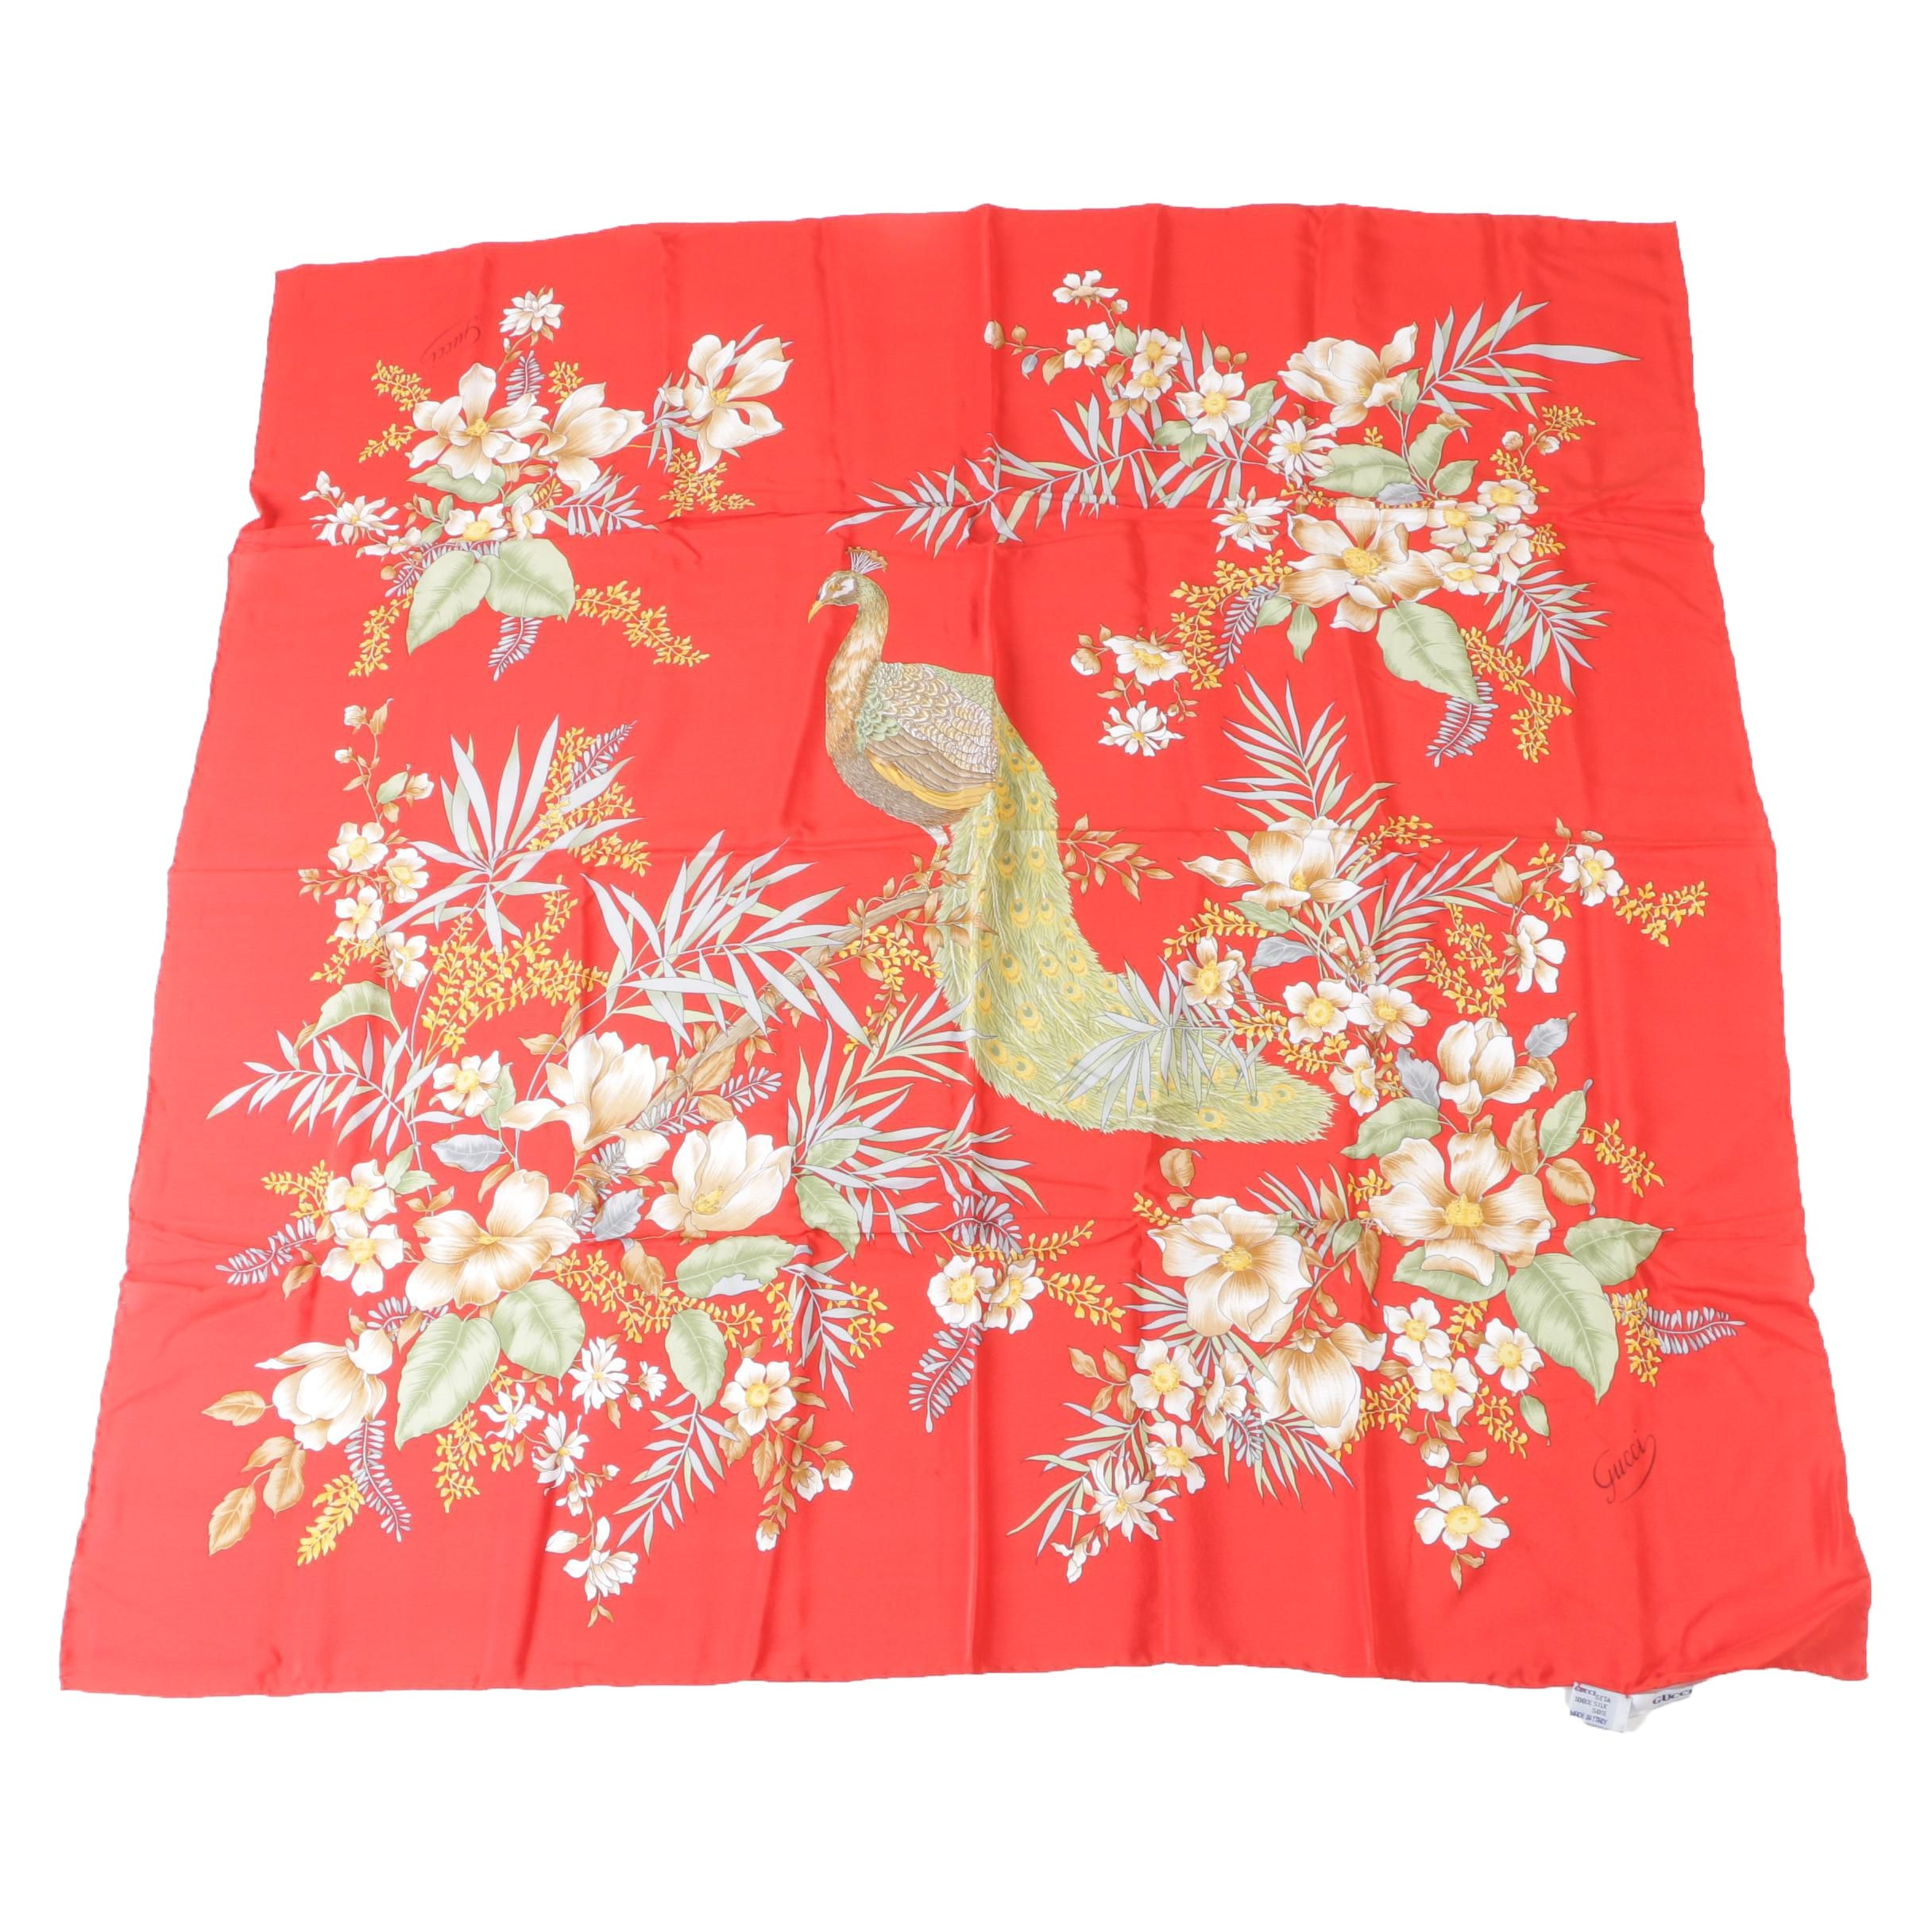 Gucci Red Silk Carré Scarf with Peacock and Clematis Flowers, Made in Italy